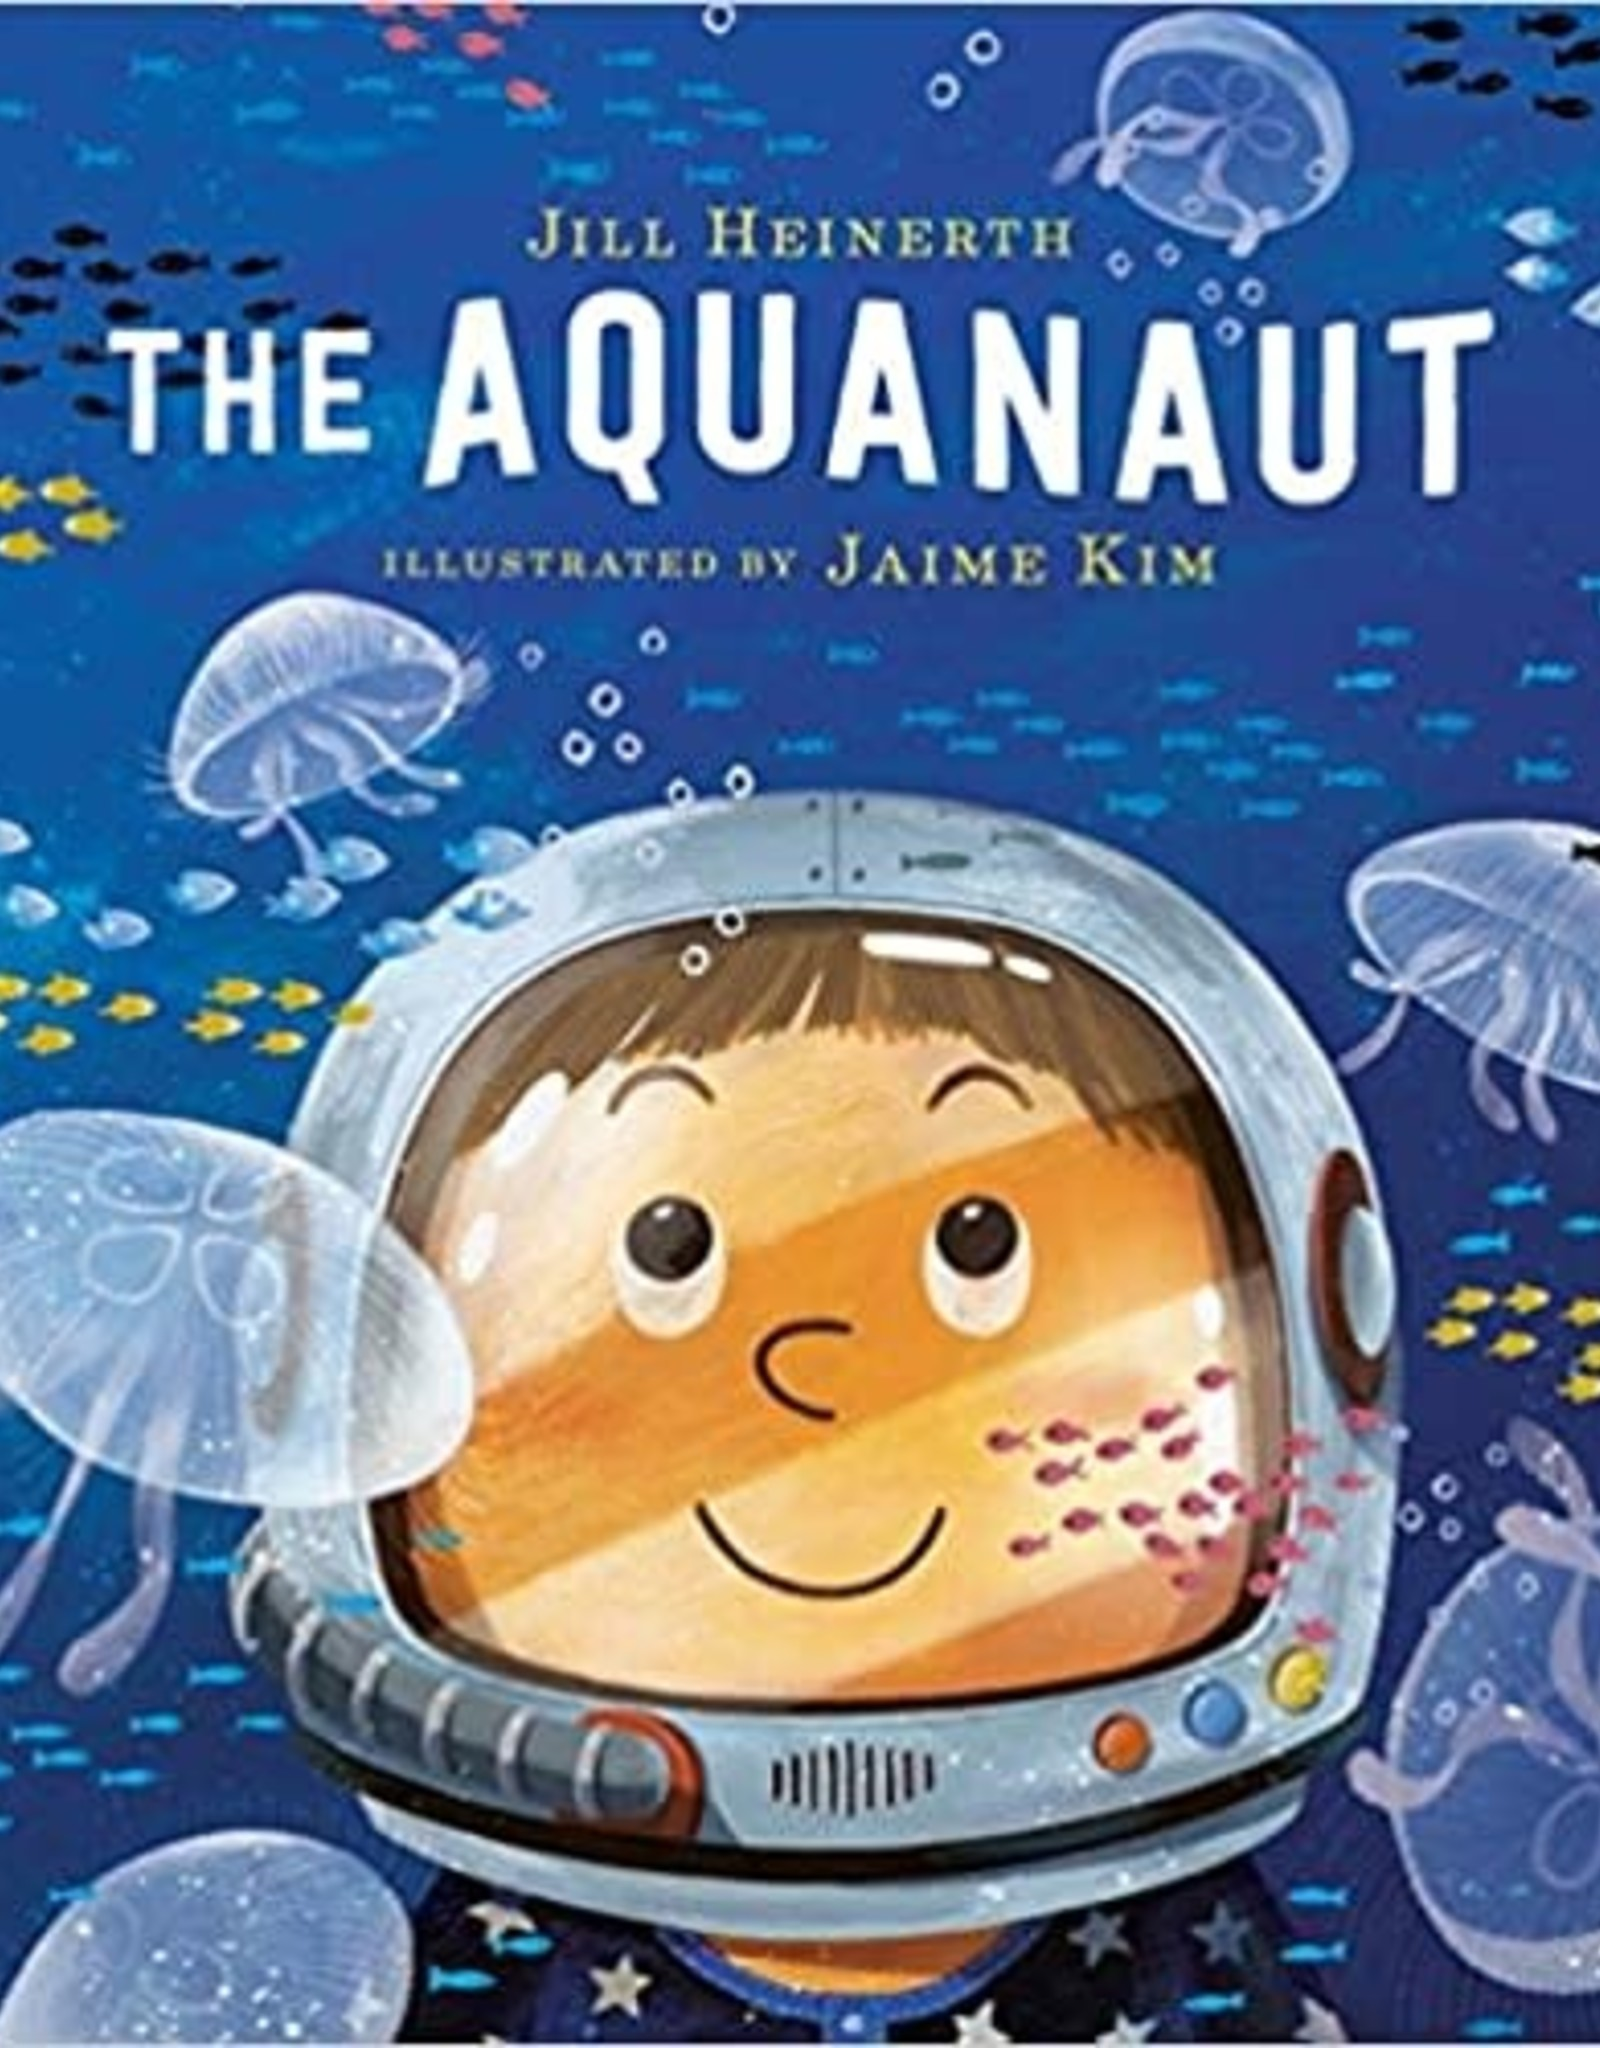 The Aquanaut